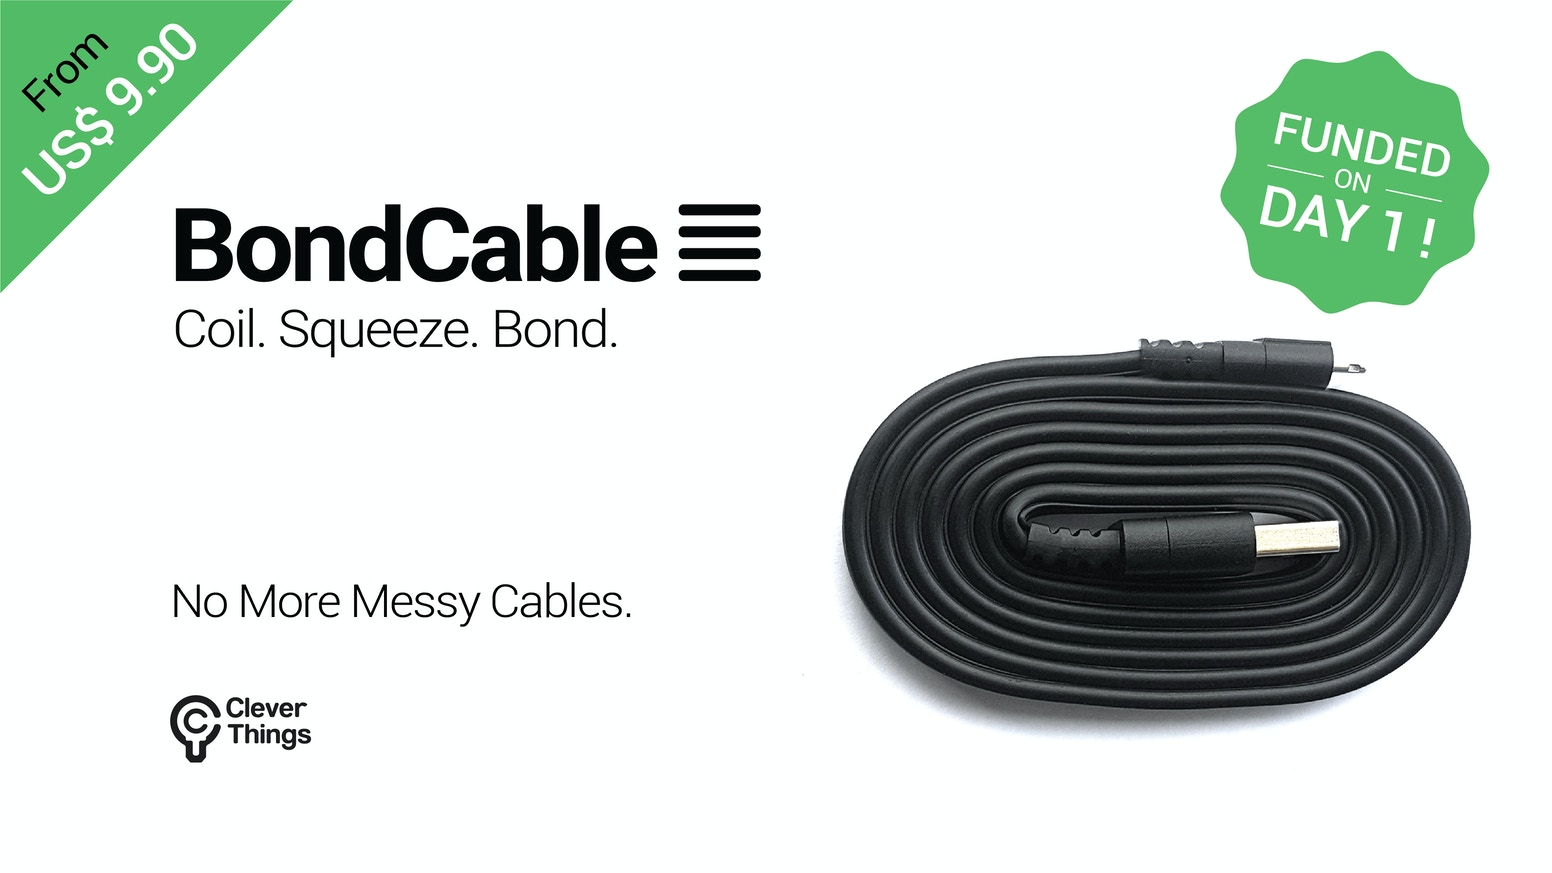 Coil. Squeeze. Bond - The Charging cable that bonds onto itself when coiled! No more messy cables!